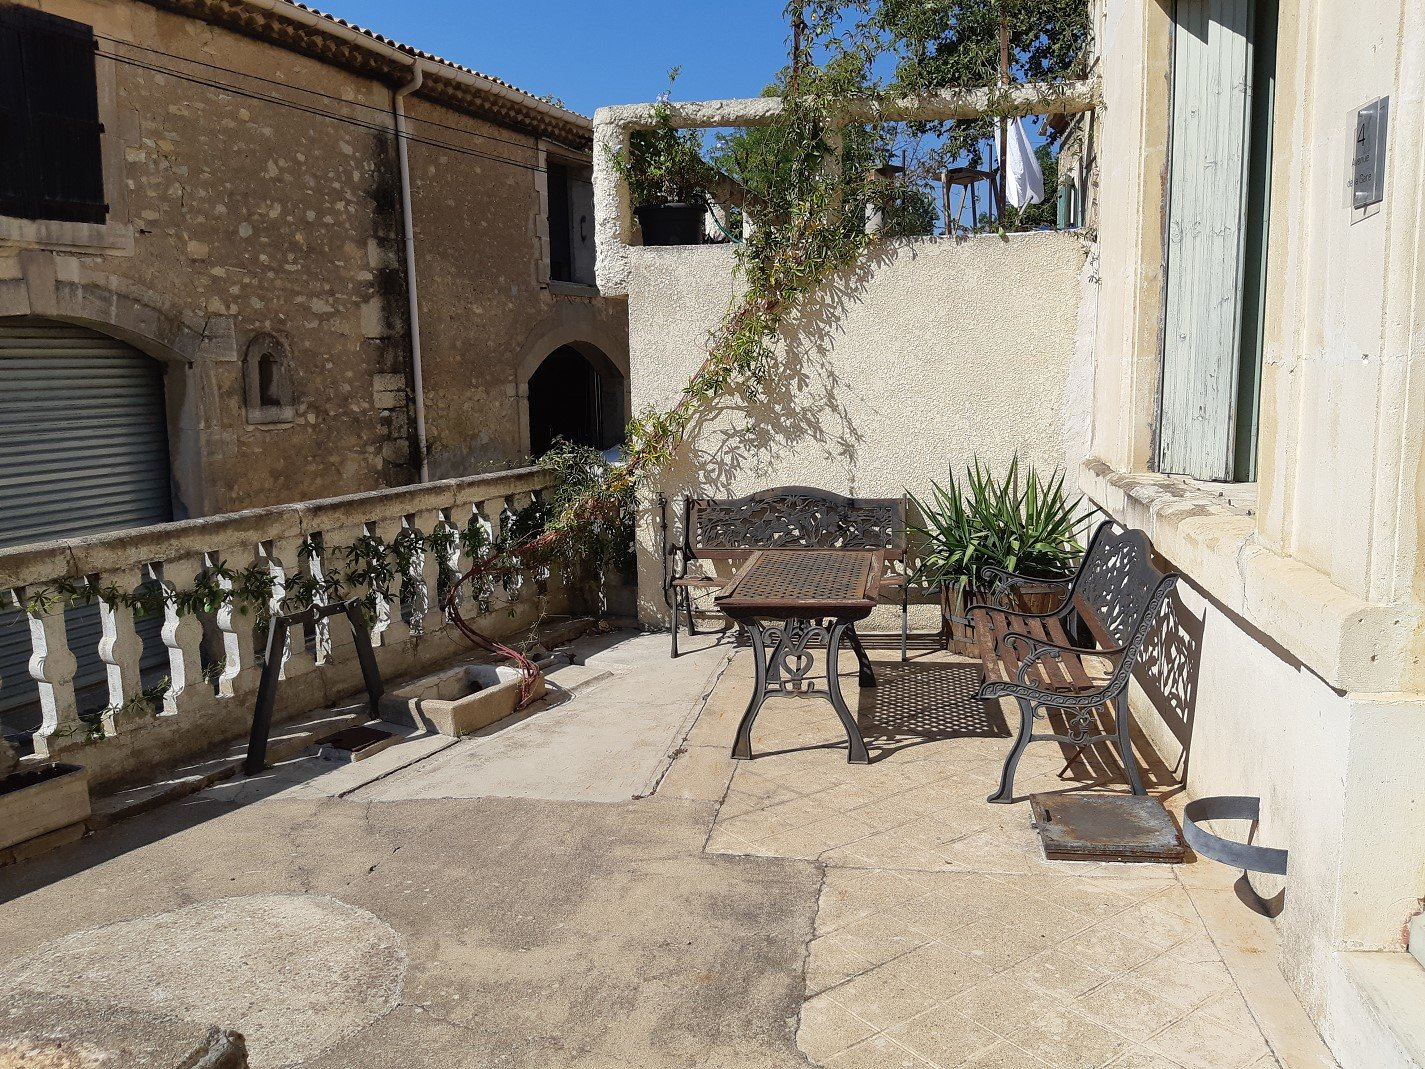 Winegrower's house with terrace and garden